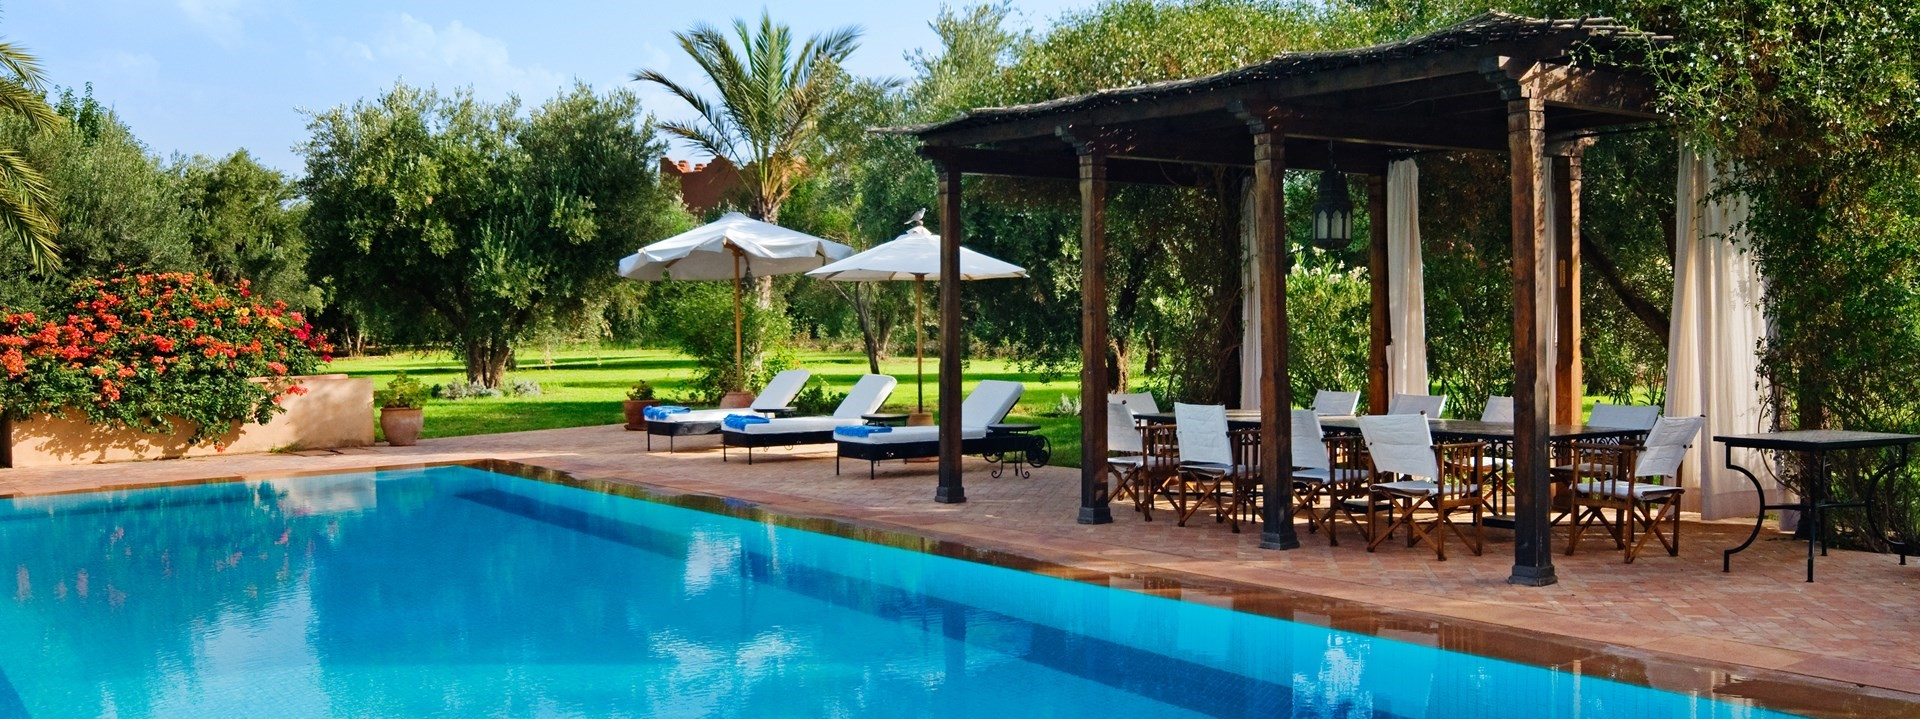 villa-alexandra-marrakech-pool-terrace